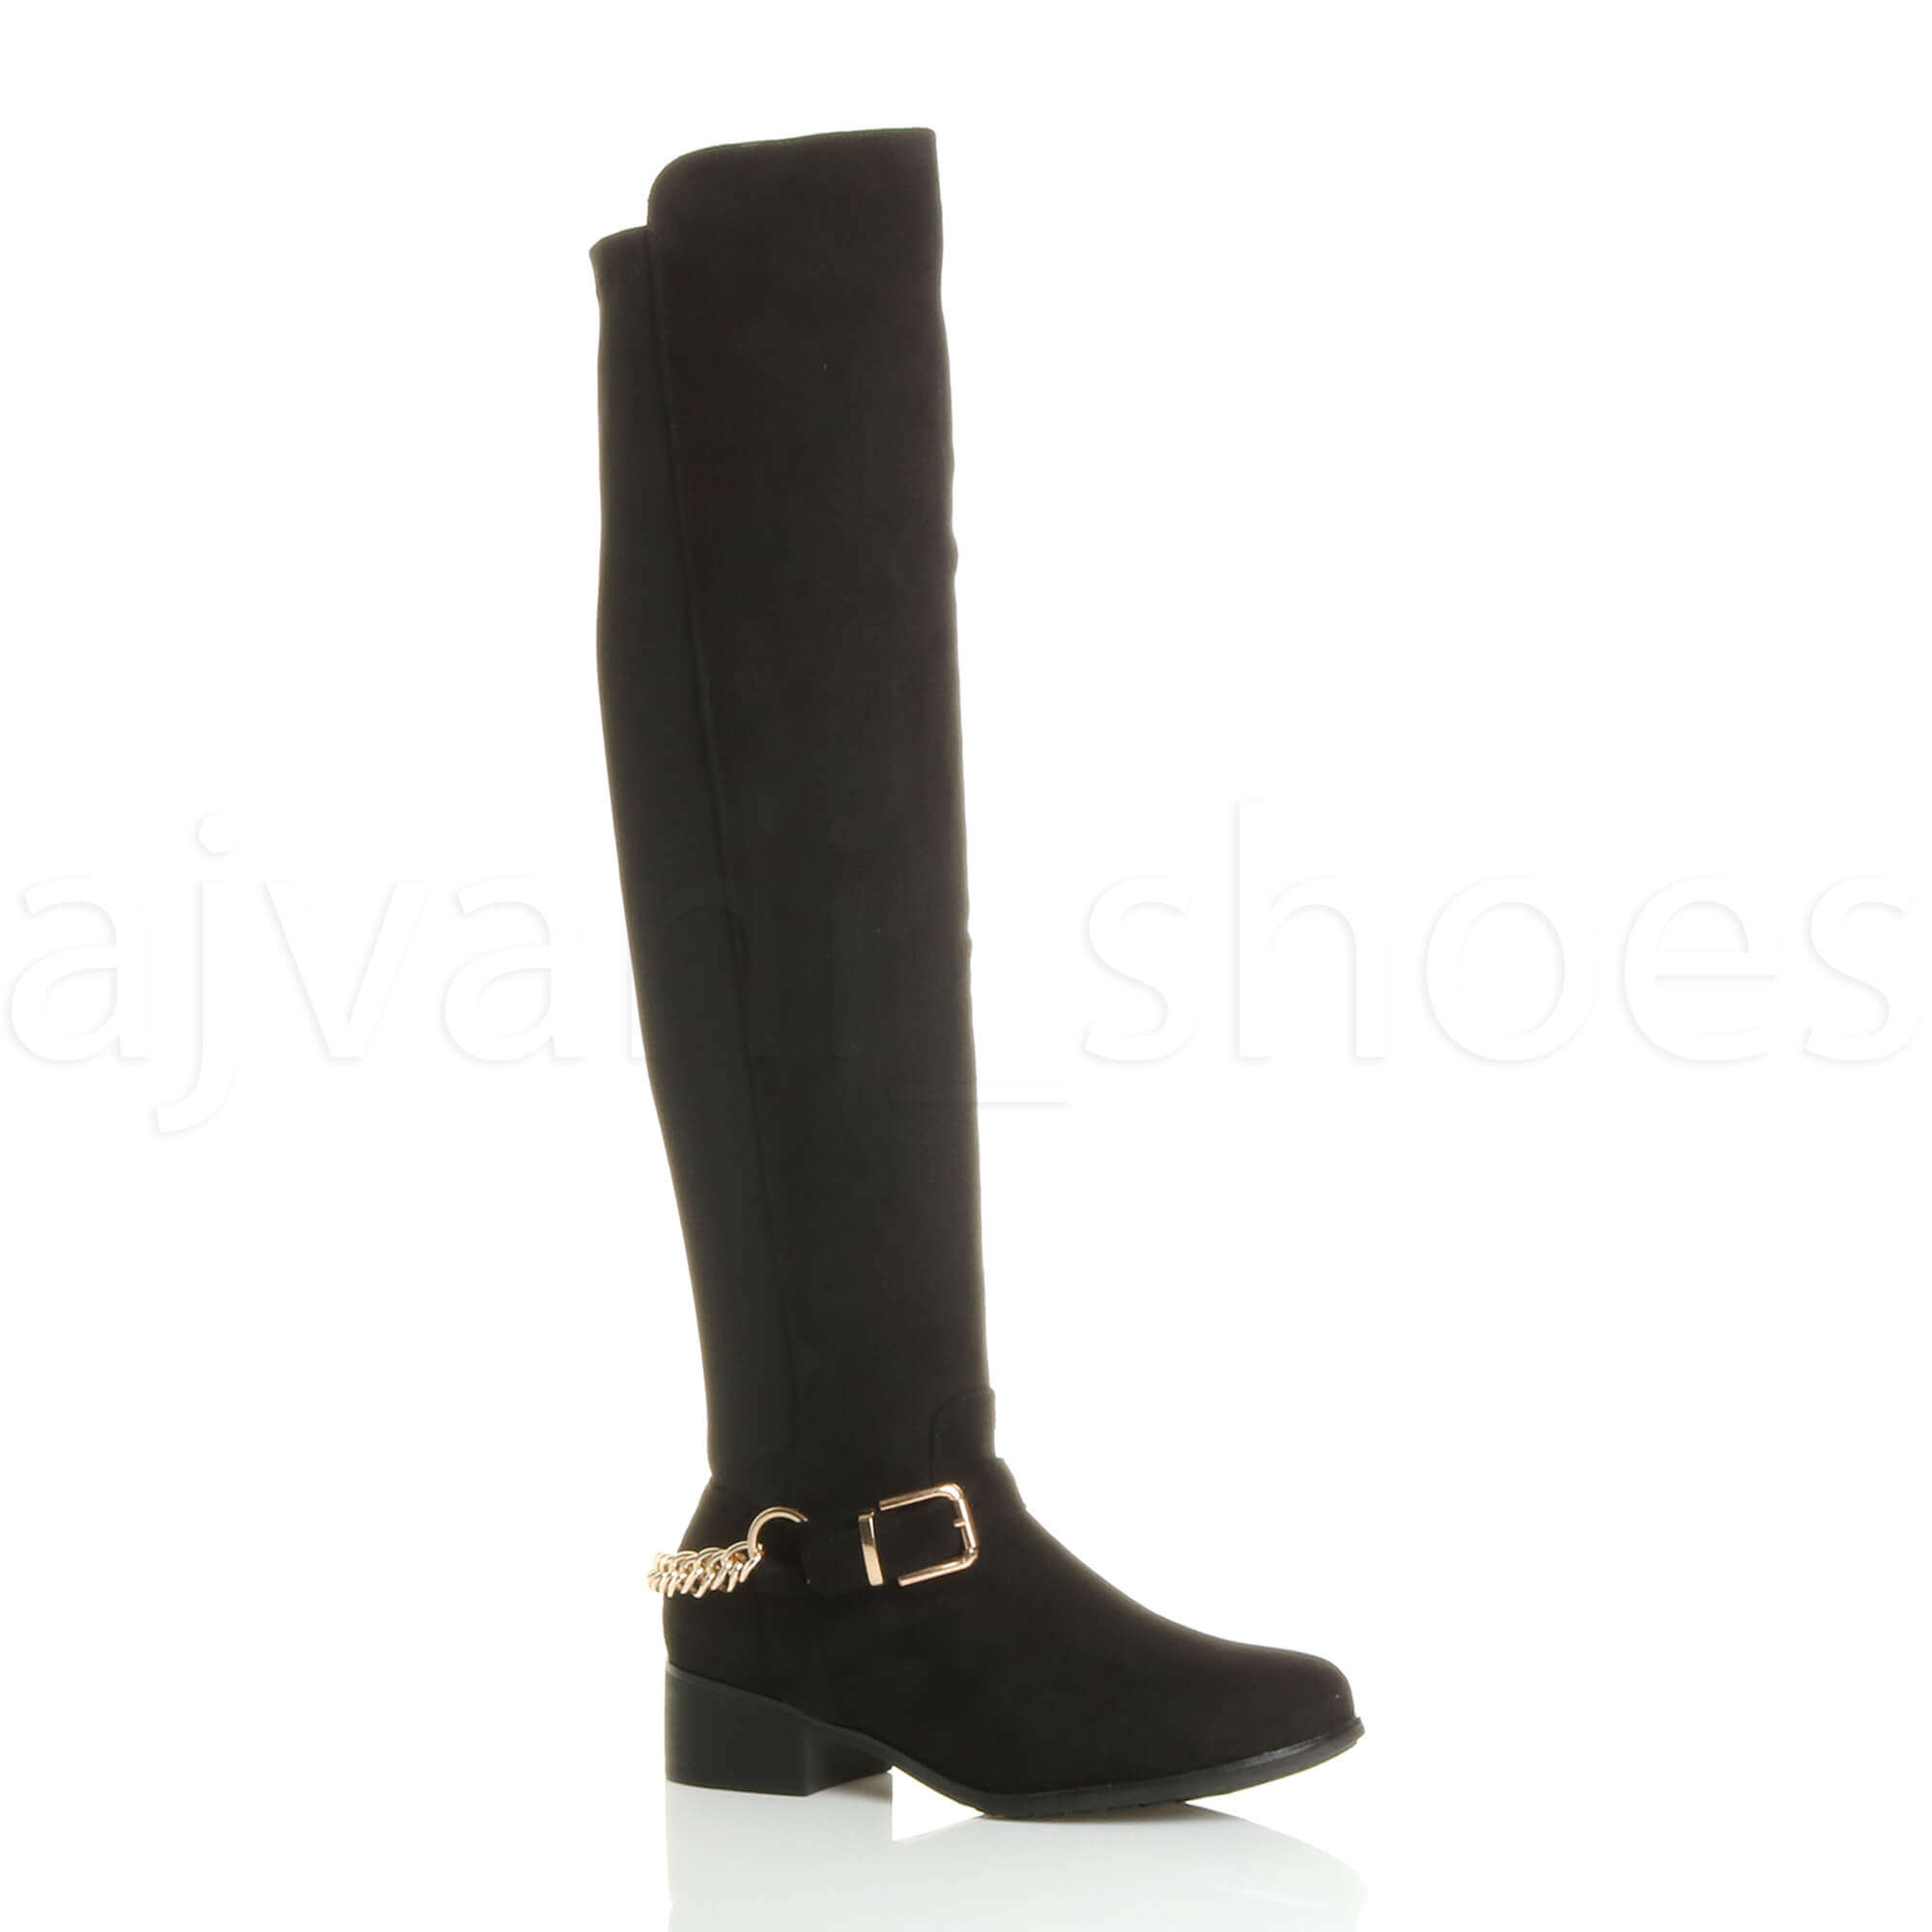 WOMENS-LADIES-HIGH-OVER-THE-KNEE-ELASTIC-STRETCH-PULL-ON-LOW-HEEL-BOOTS-SIZE